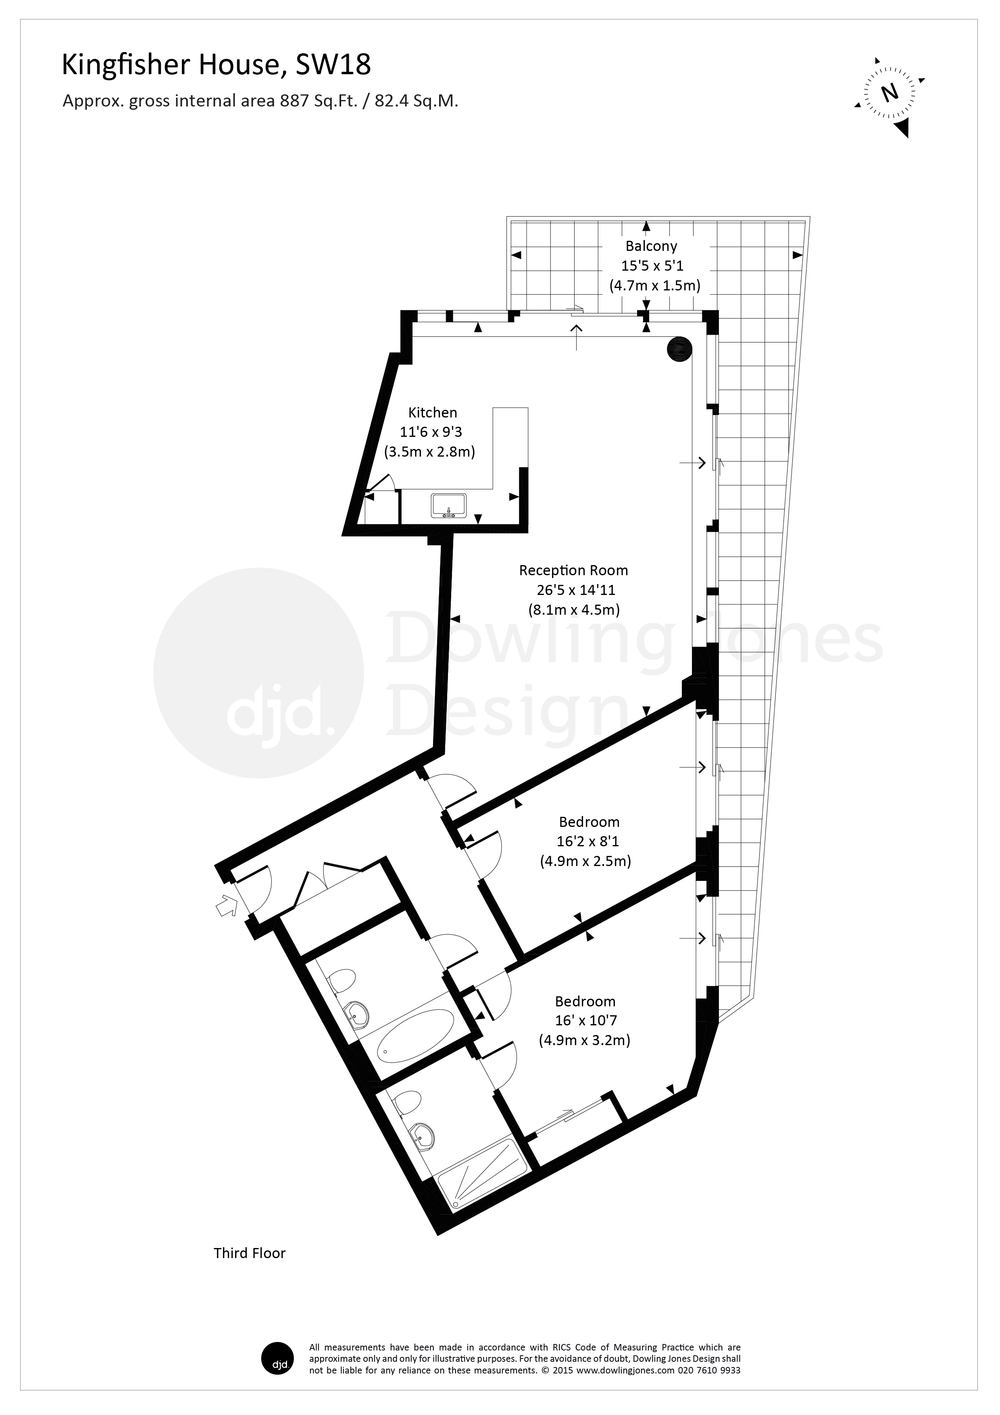 dowling jones kingfisher house floor plan